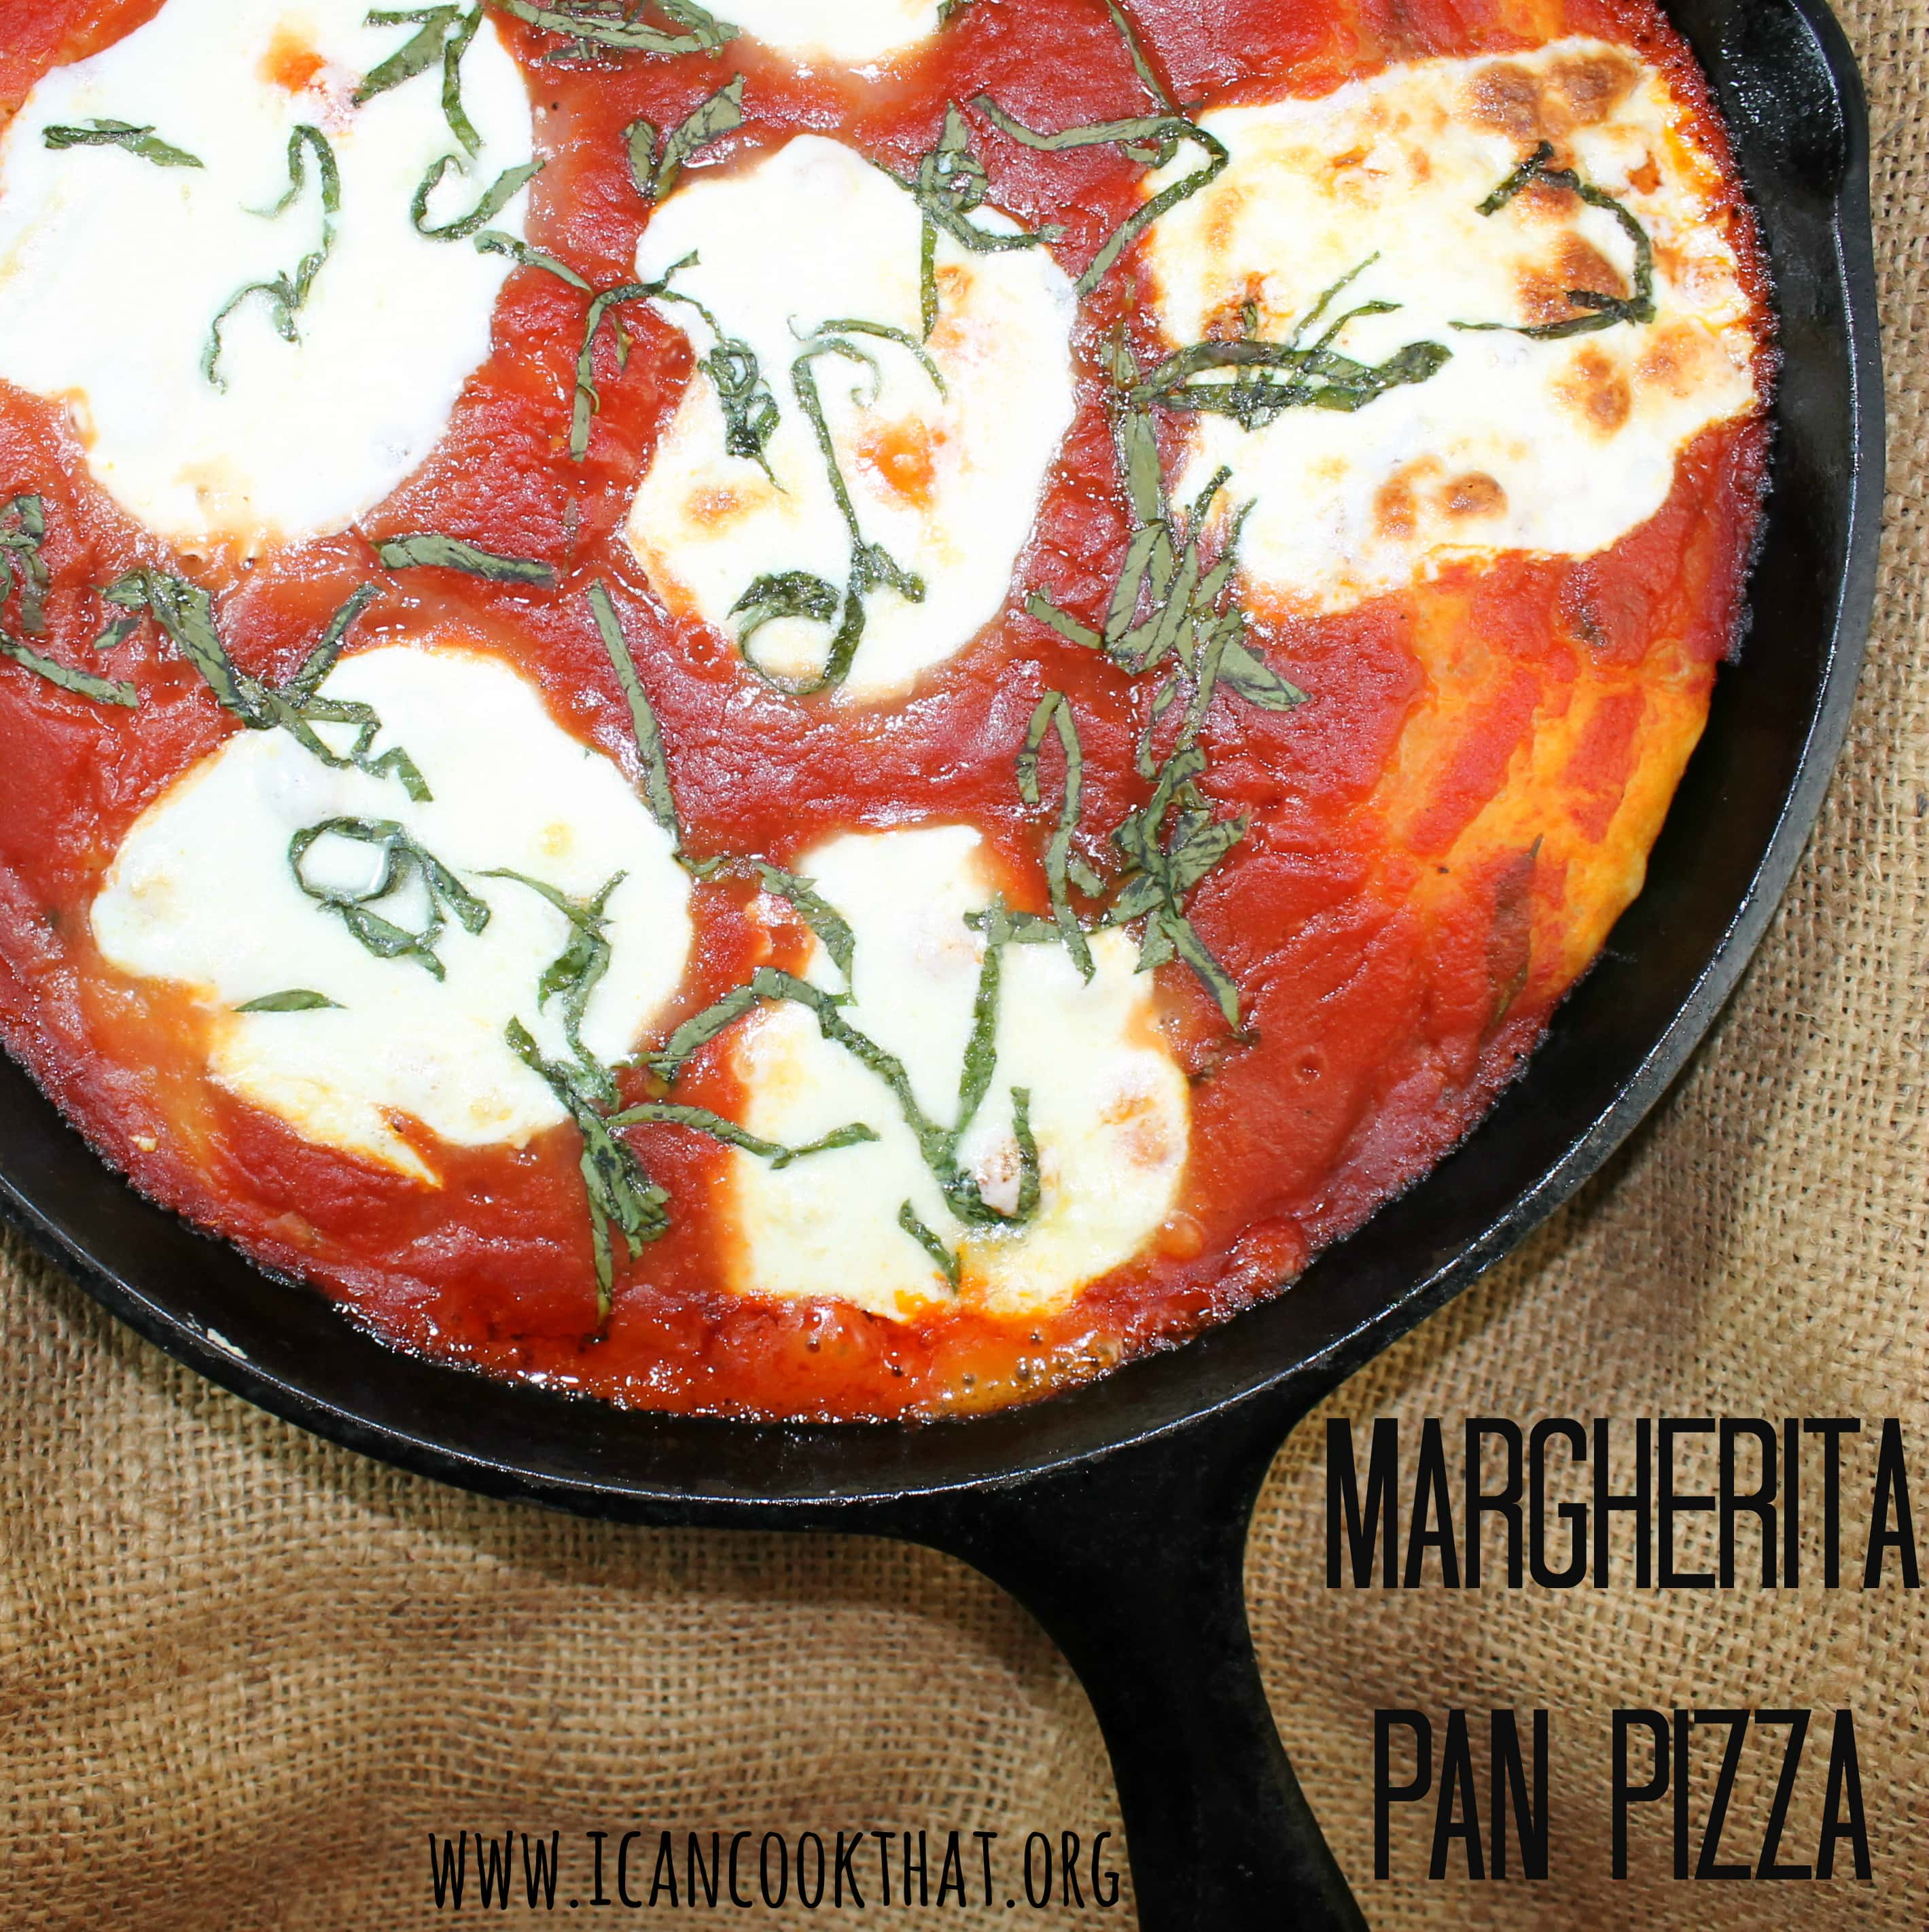 Margherita Pan Pizza